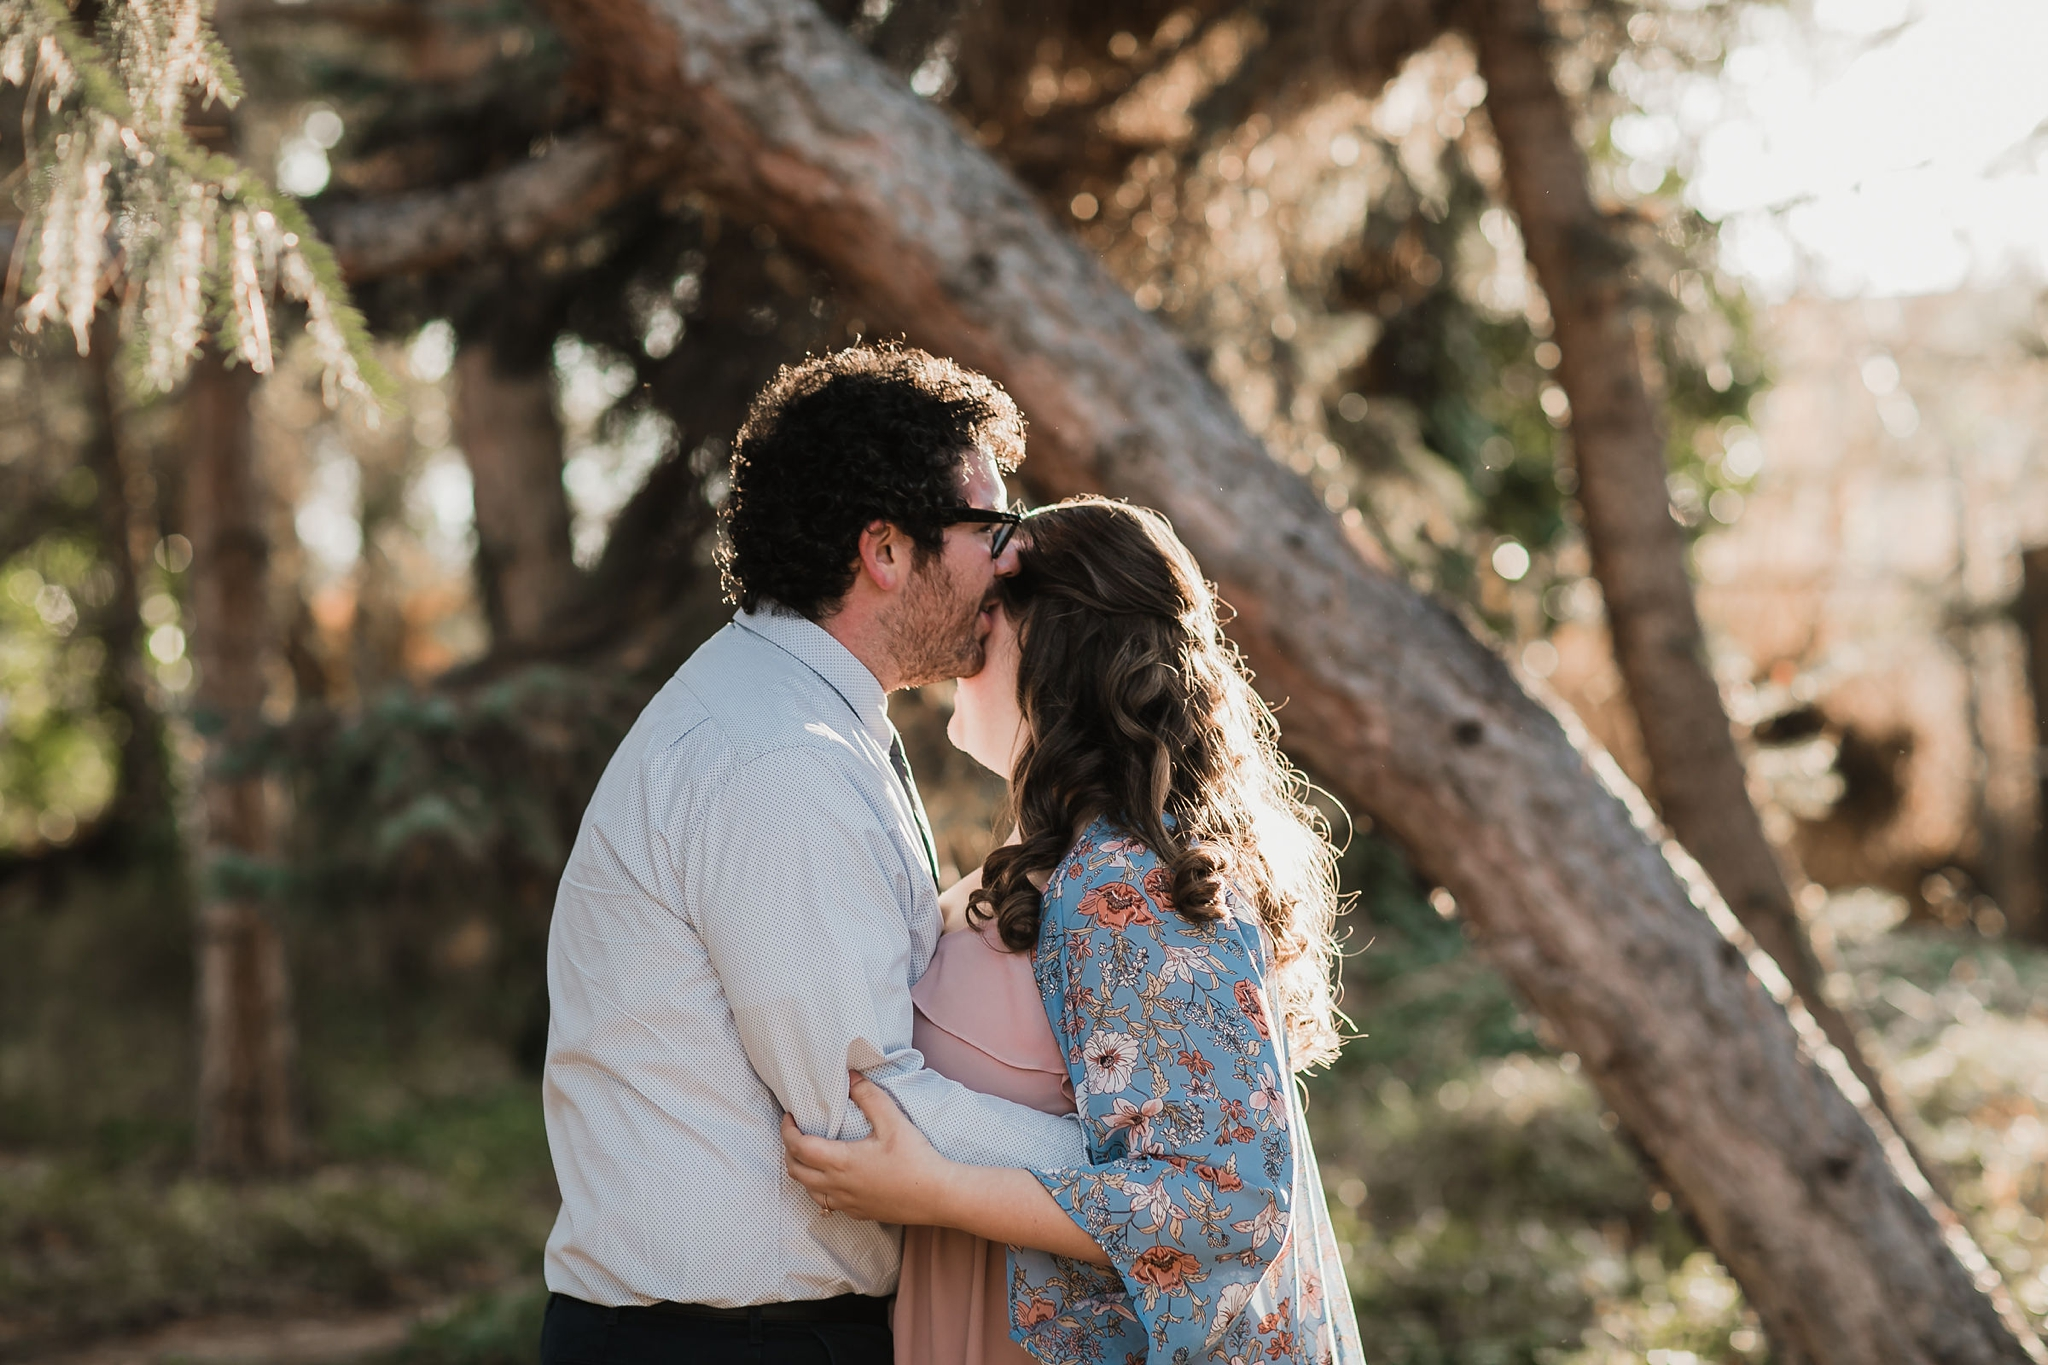 Alicia+lucia+photography+-+albuquerque+wedding+photographer+-+santa+fe+wedding+photography+-+new+mexico+wedding+photographer+-+new+mexico+engagement+-+los+poblanos+engagement+-+spring+engagement_0015.jpg